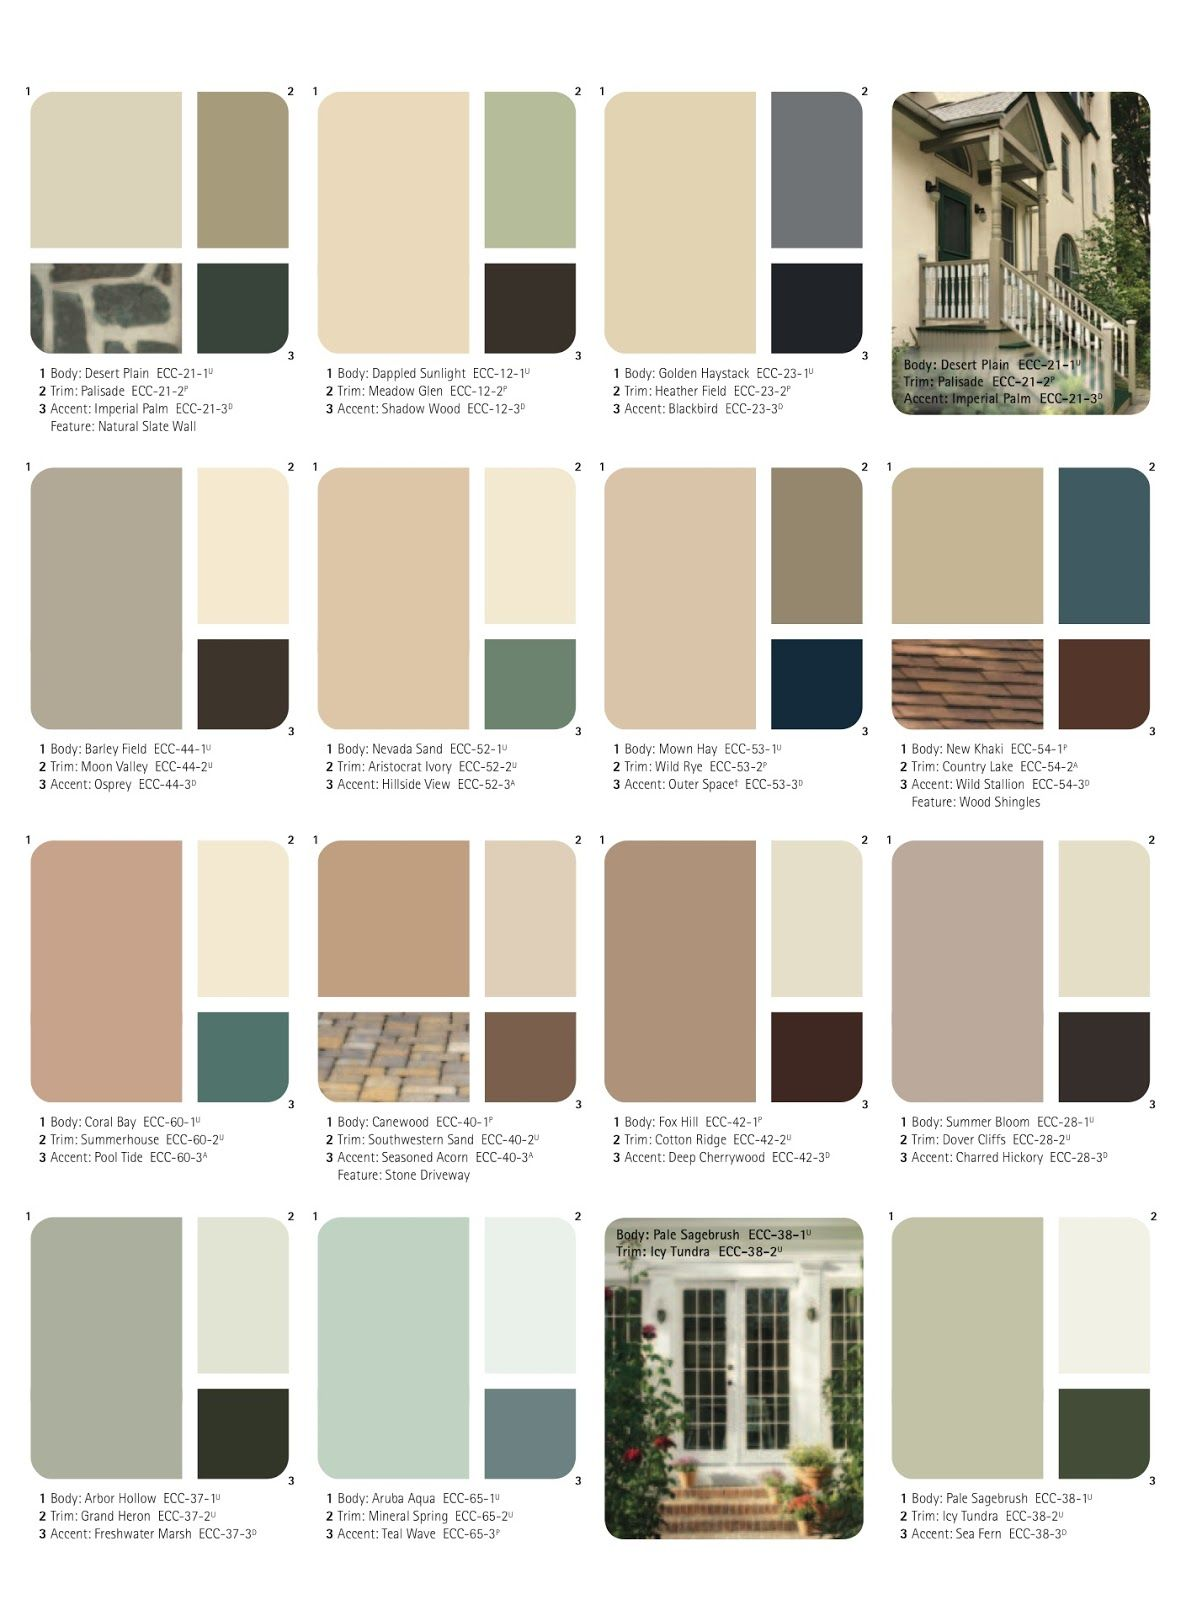 Exterior paint schemes on pinterest exterior house paints house paint exterior and stucco - House painting colors exterior schemes collection ...